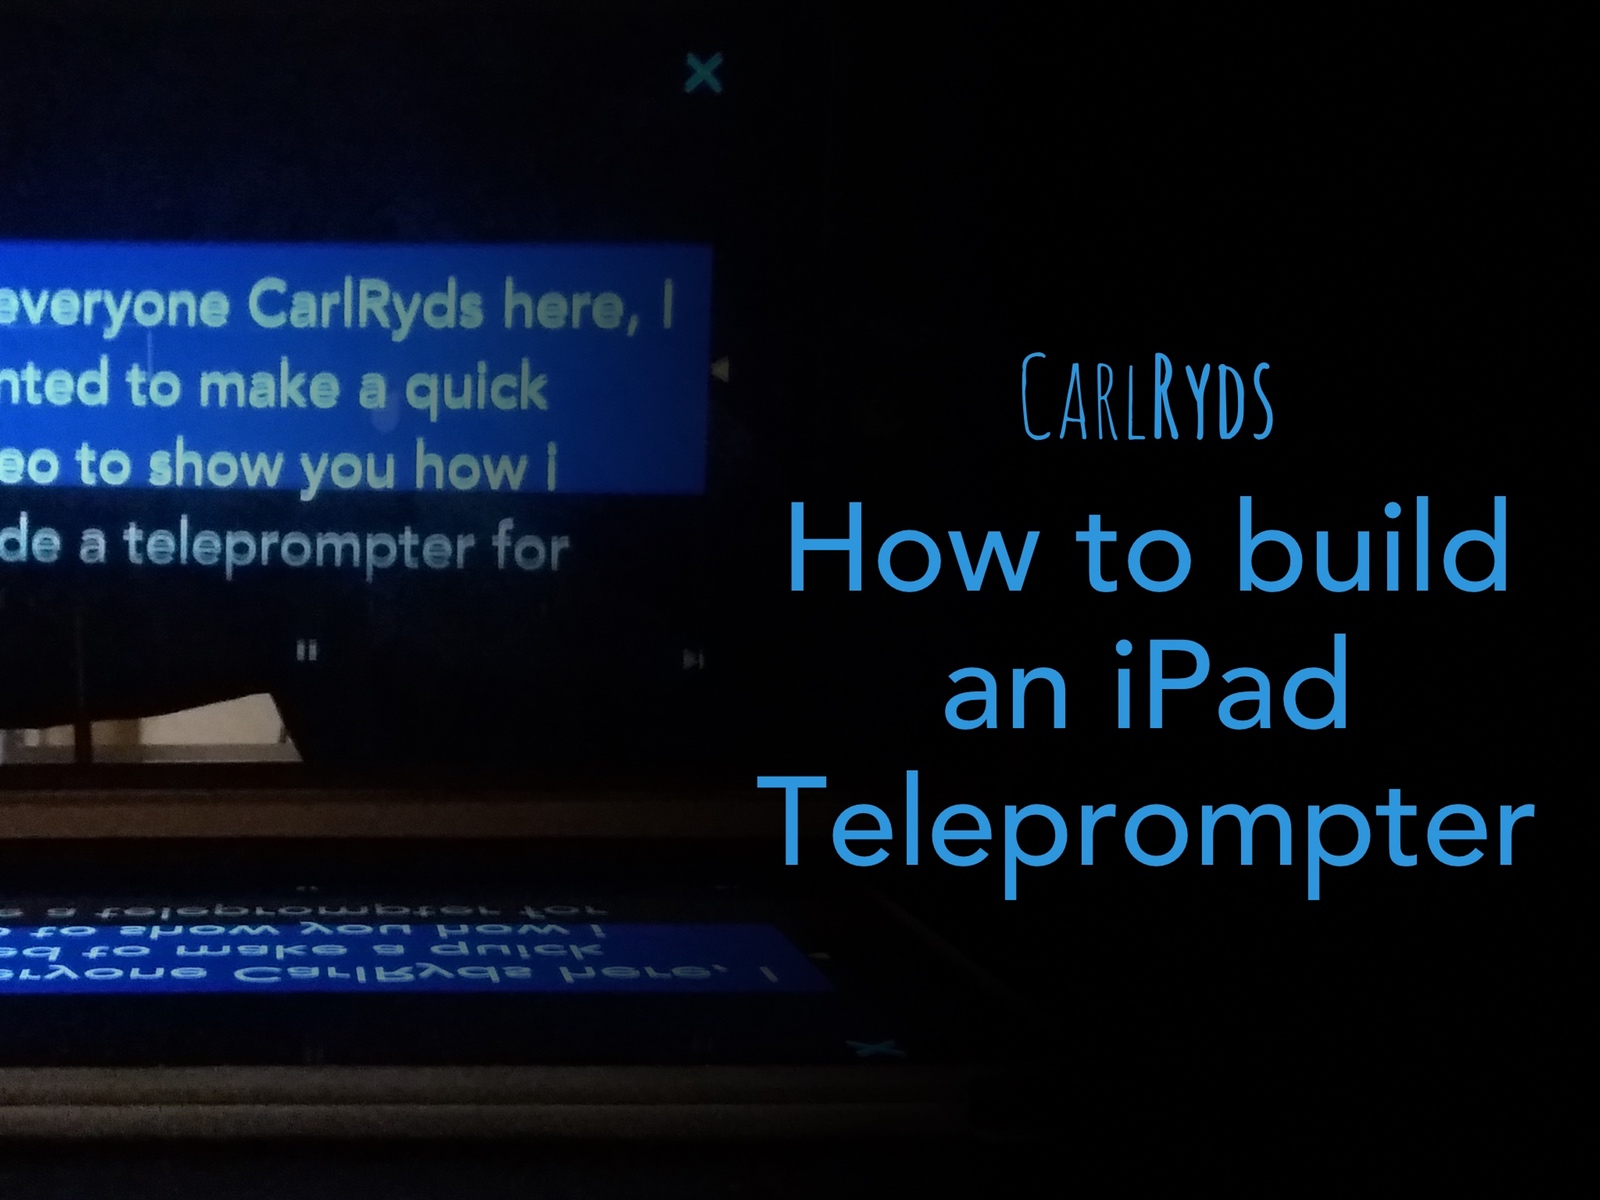 How to build an iPad Telepromoter